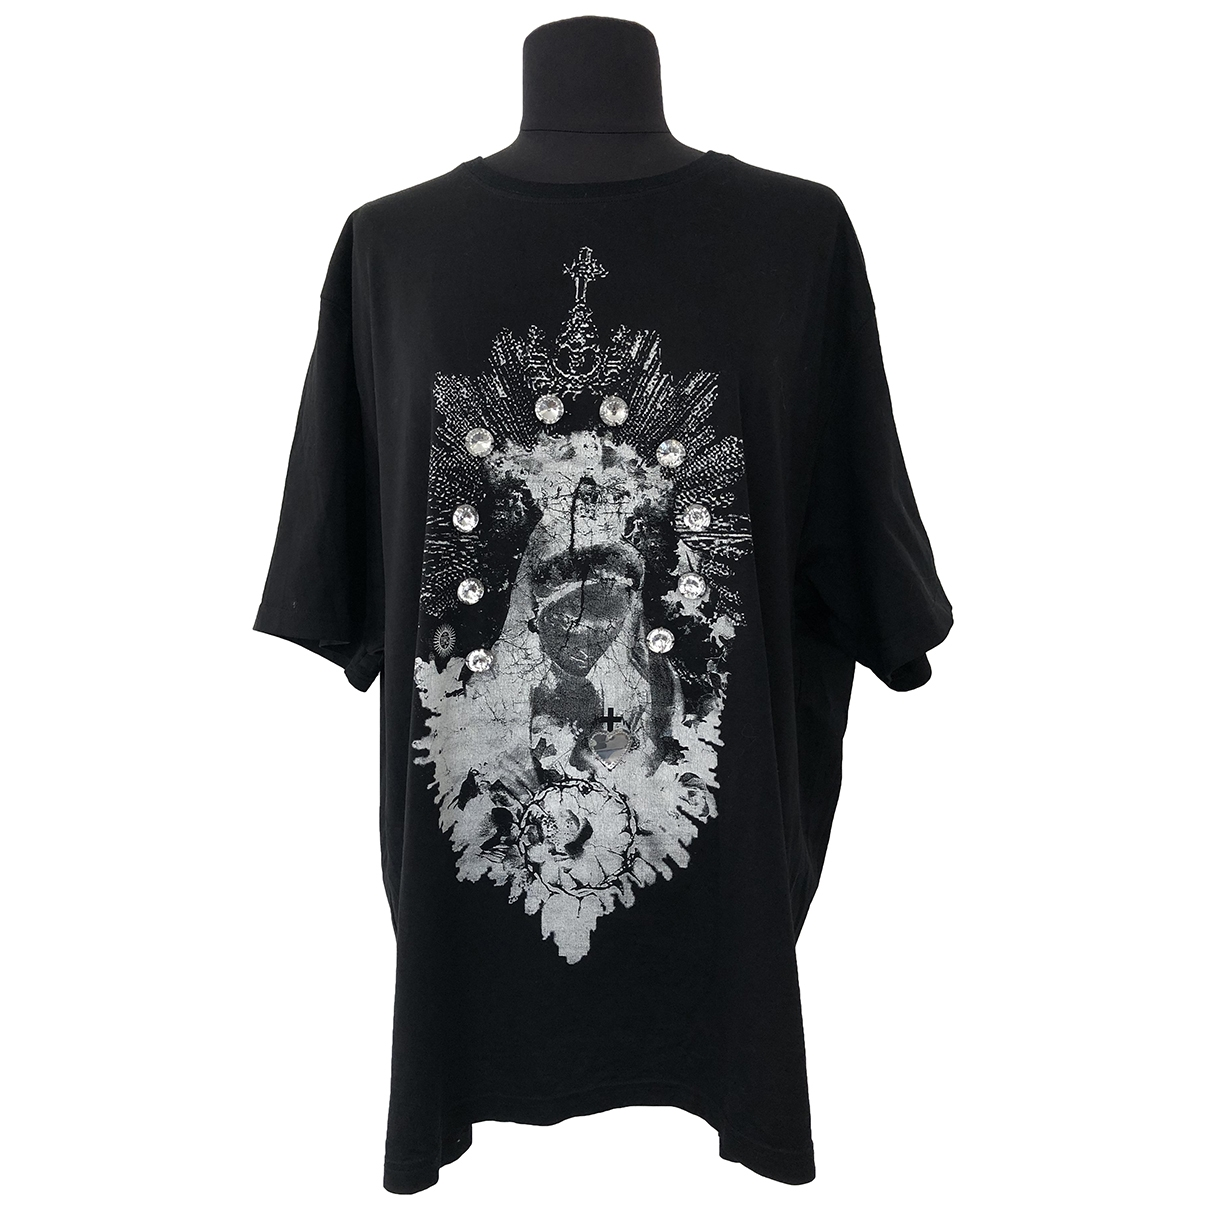 Givenchy \N Black Cotton  top for Women S International